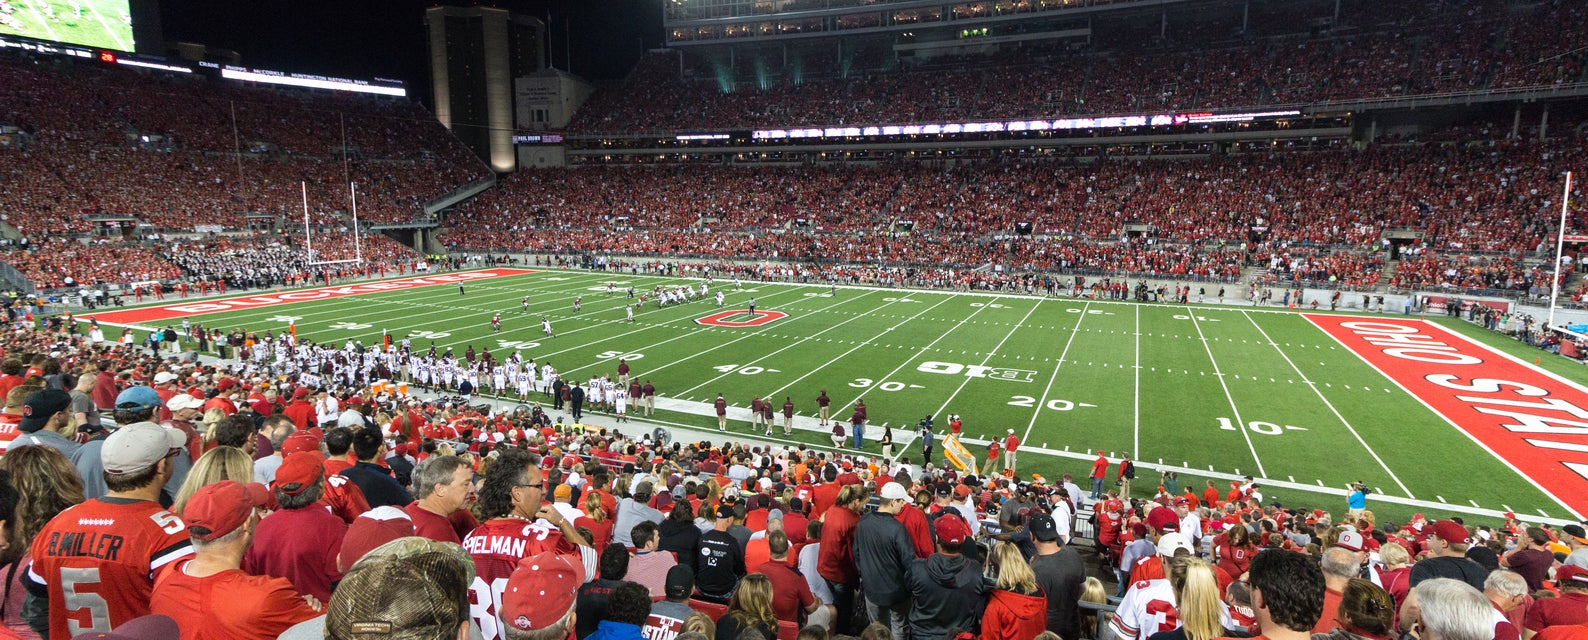 Seat view from Deck